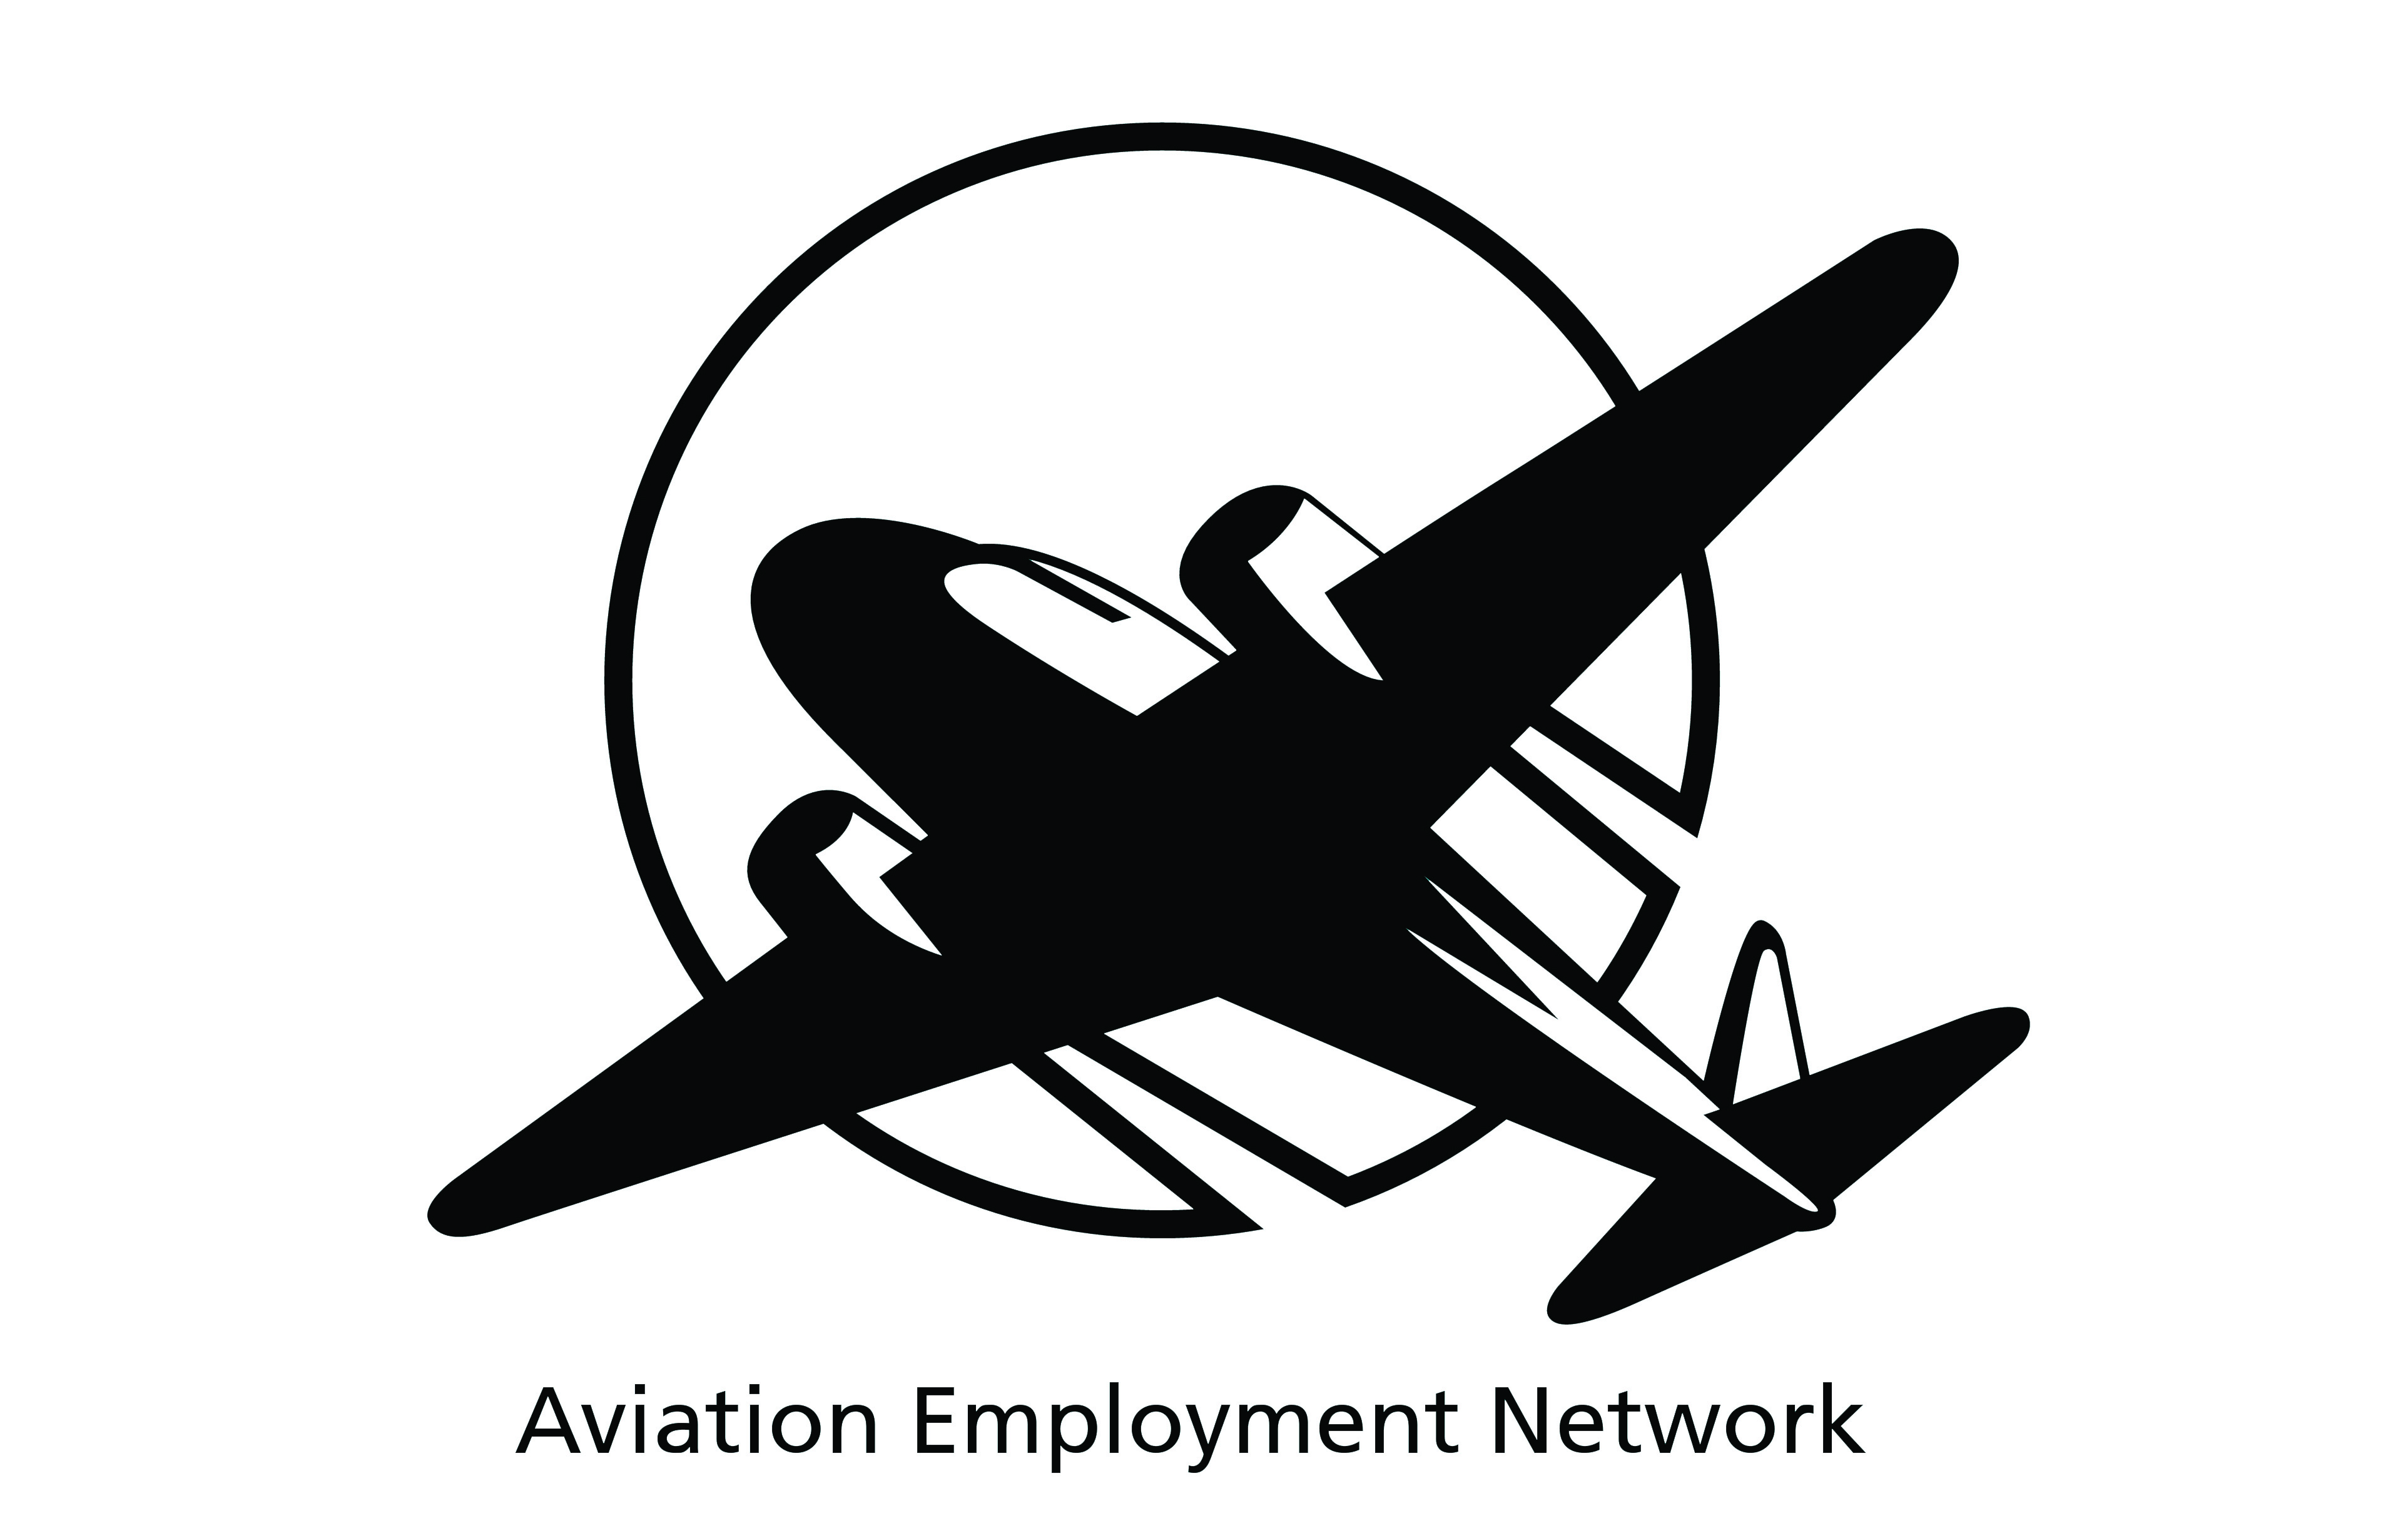 Aviation Employment Network